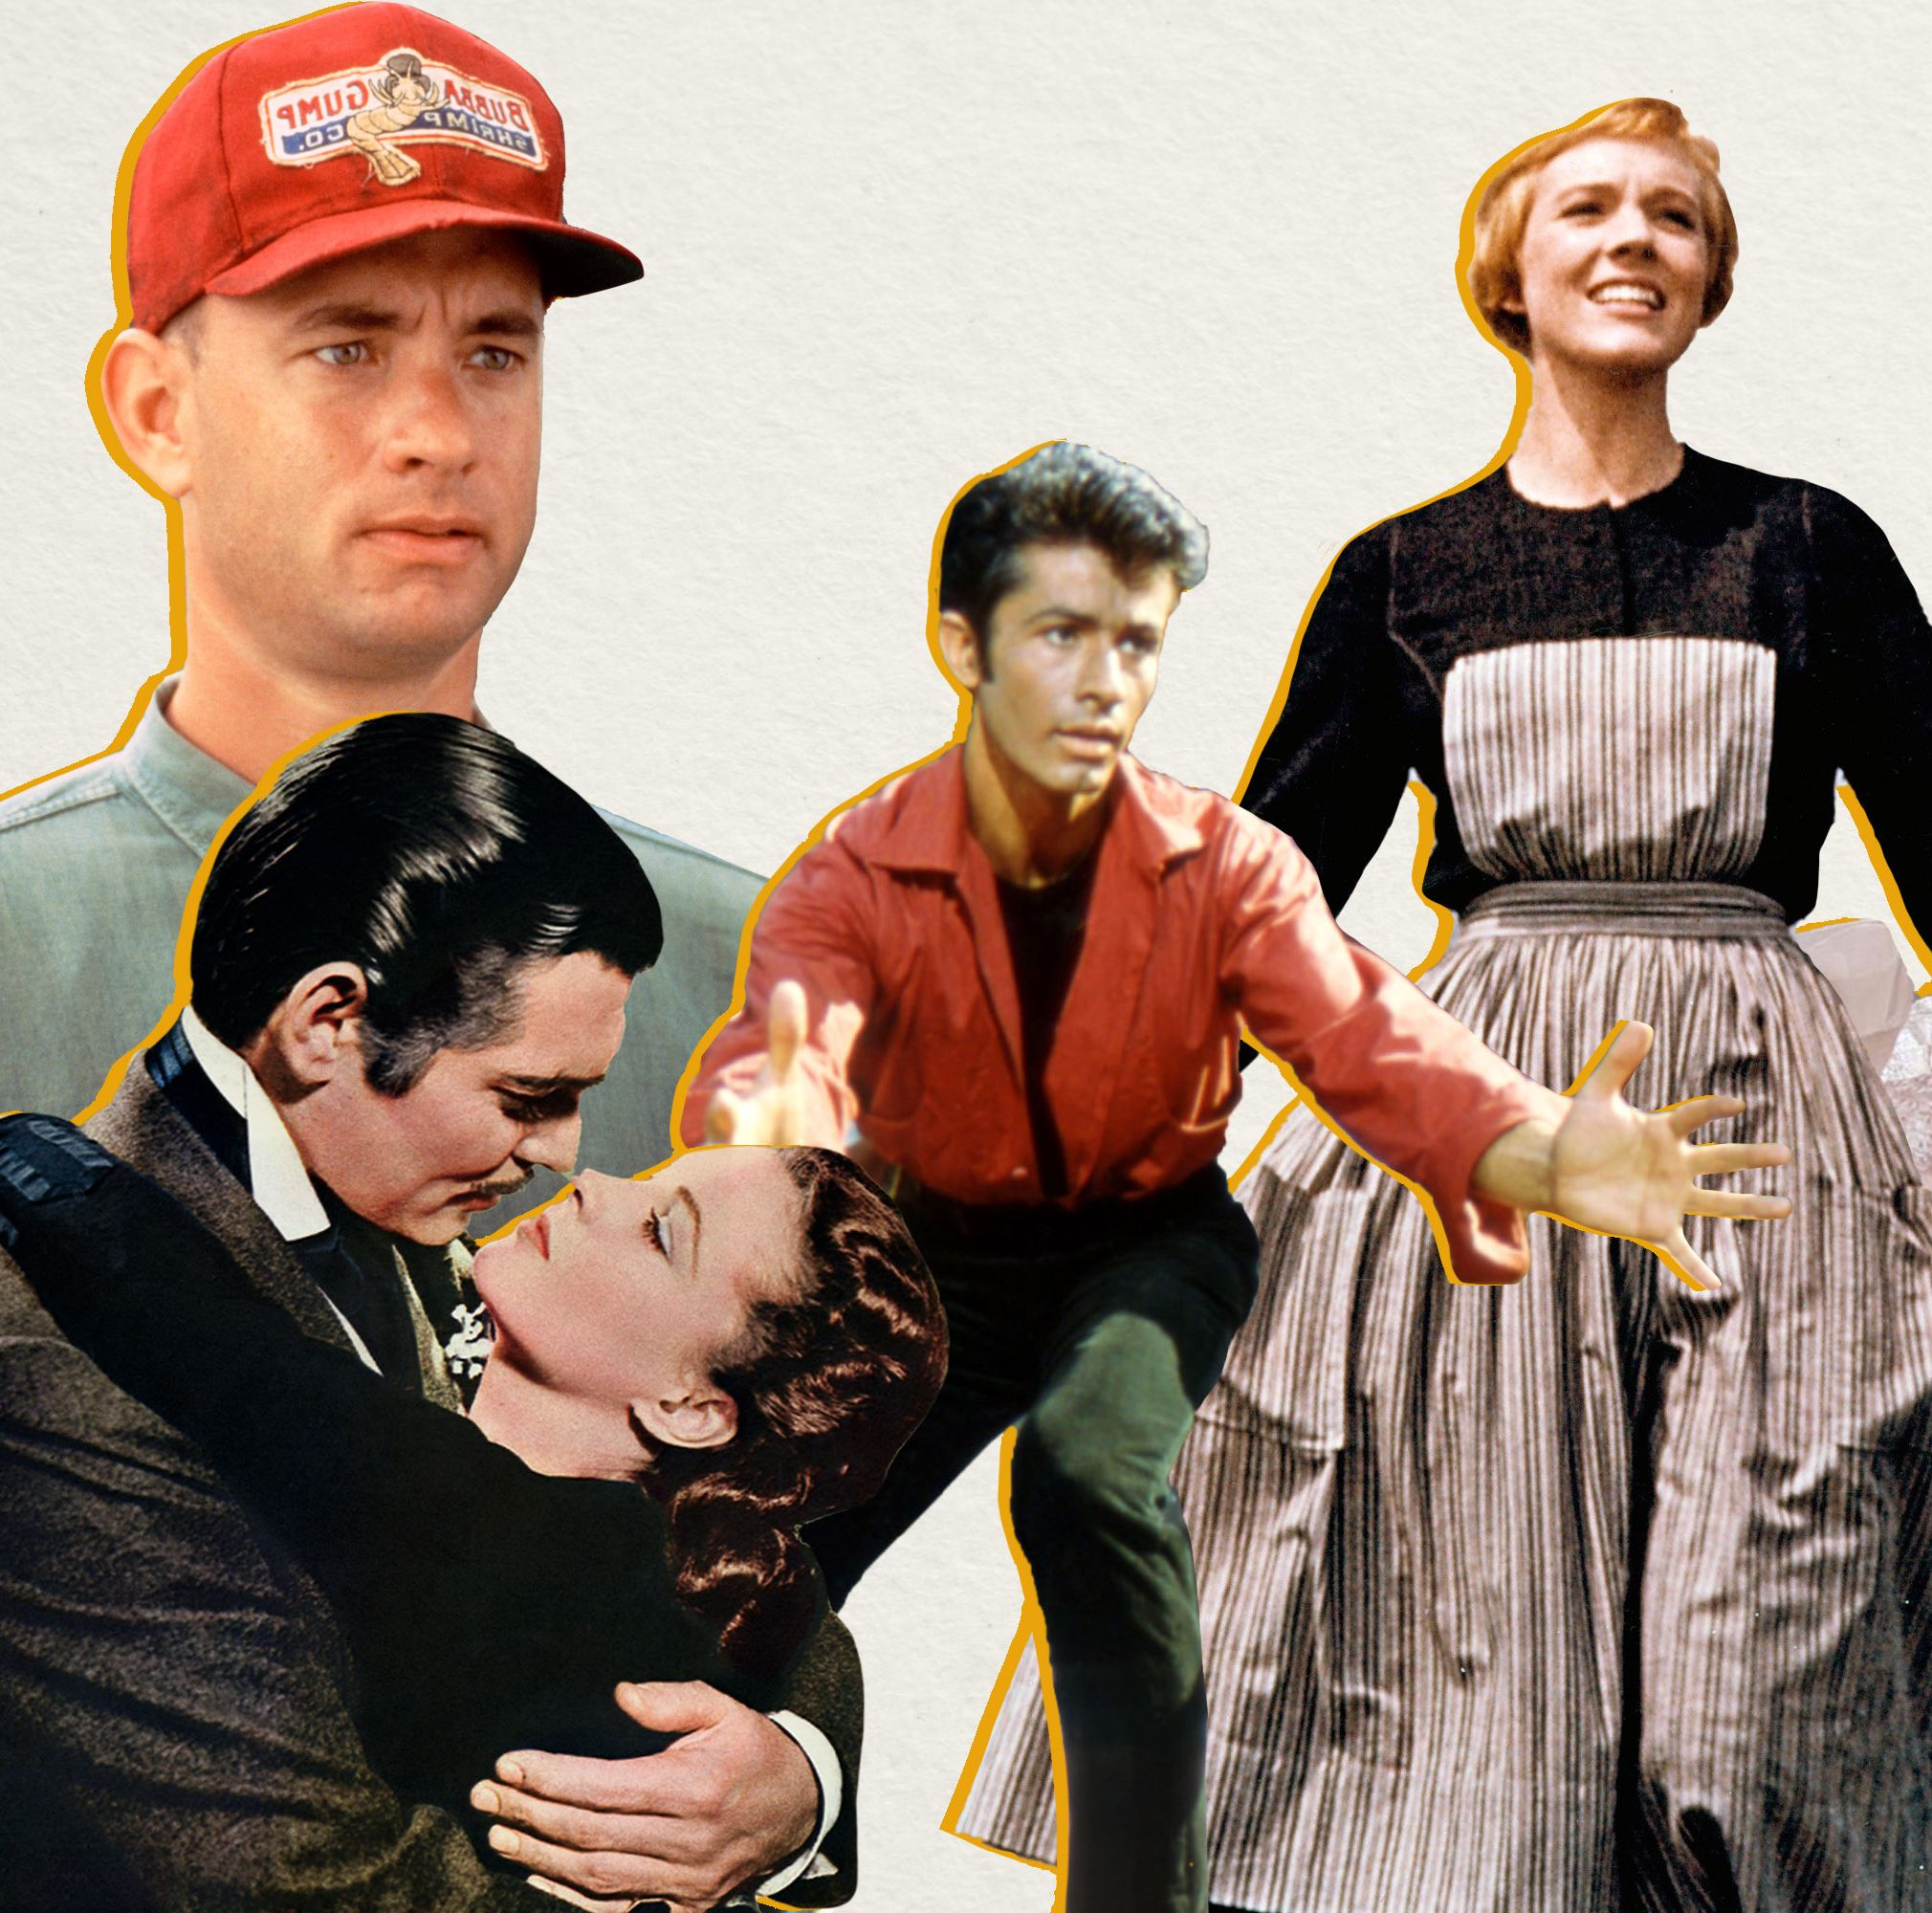 The Oscar Best Picture Winners Through the Years, Including the Year You Were Born